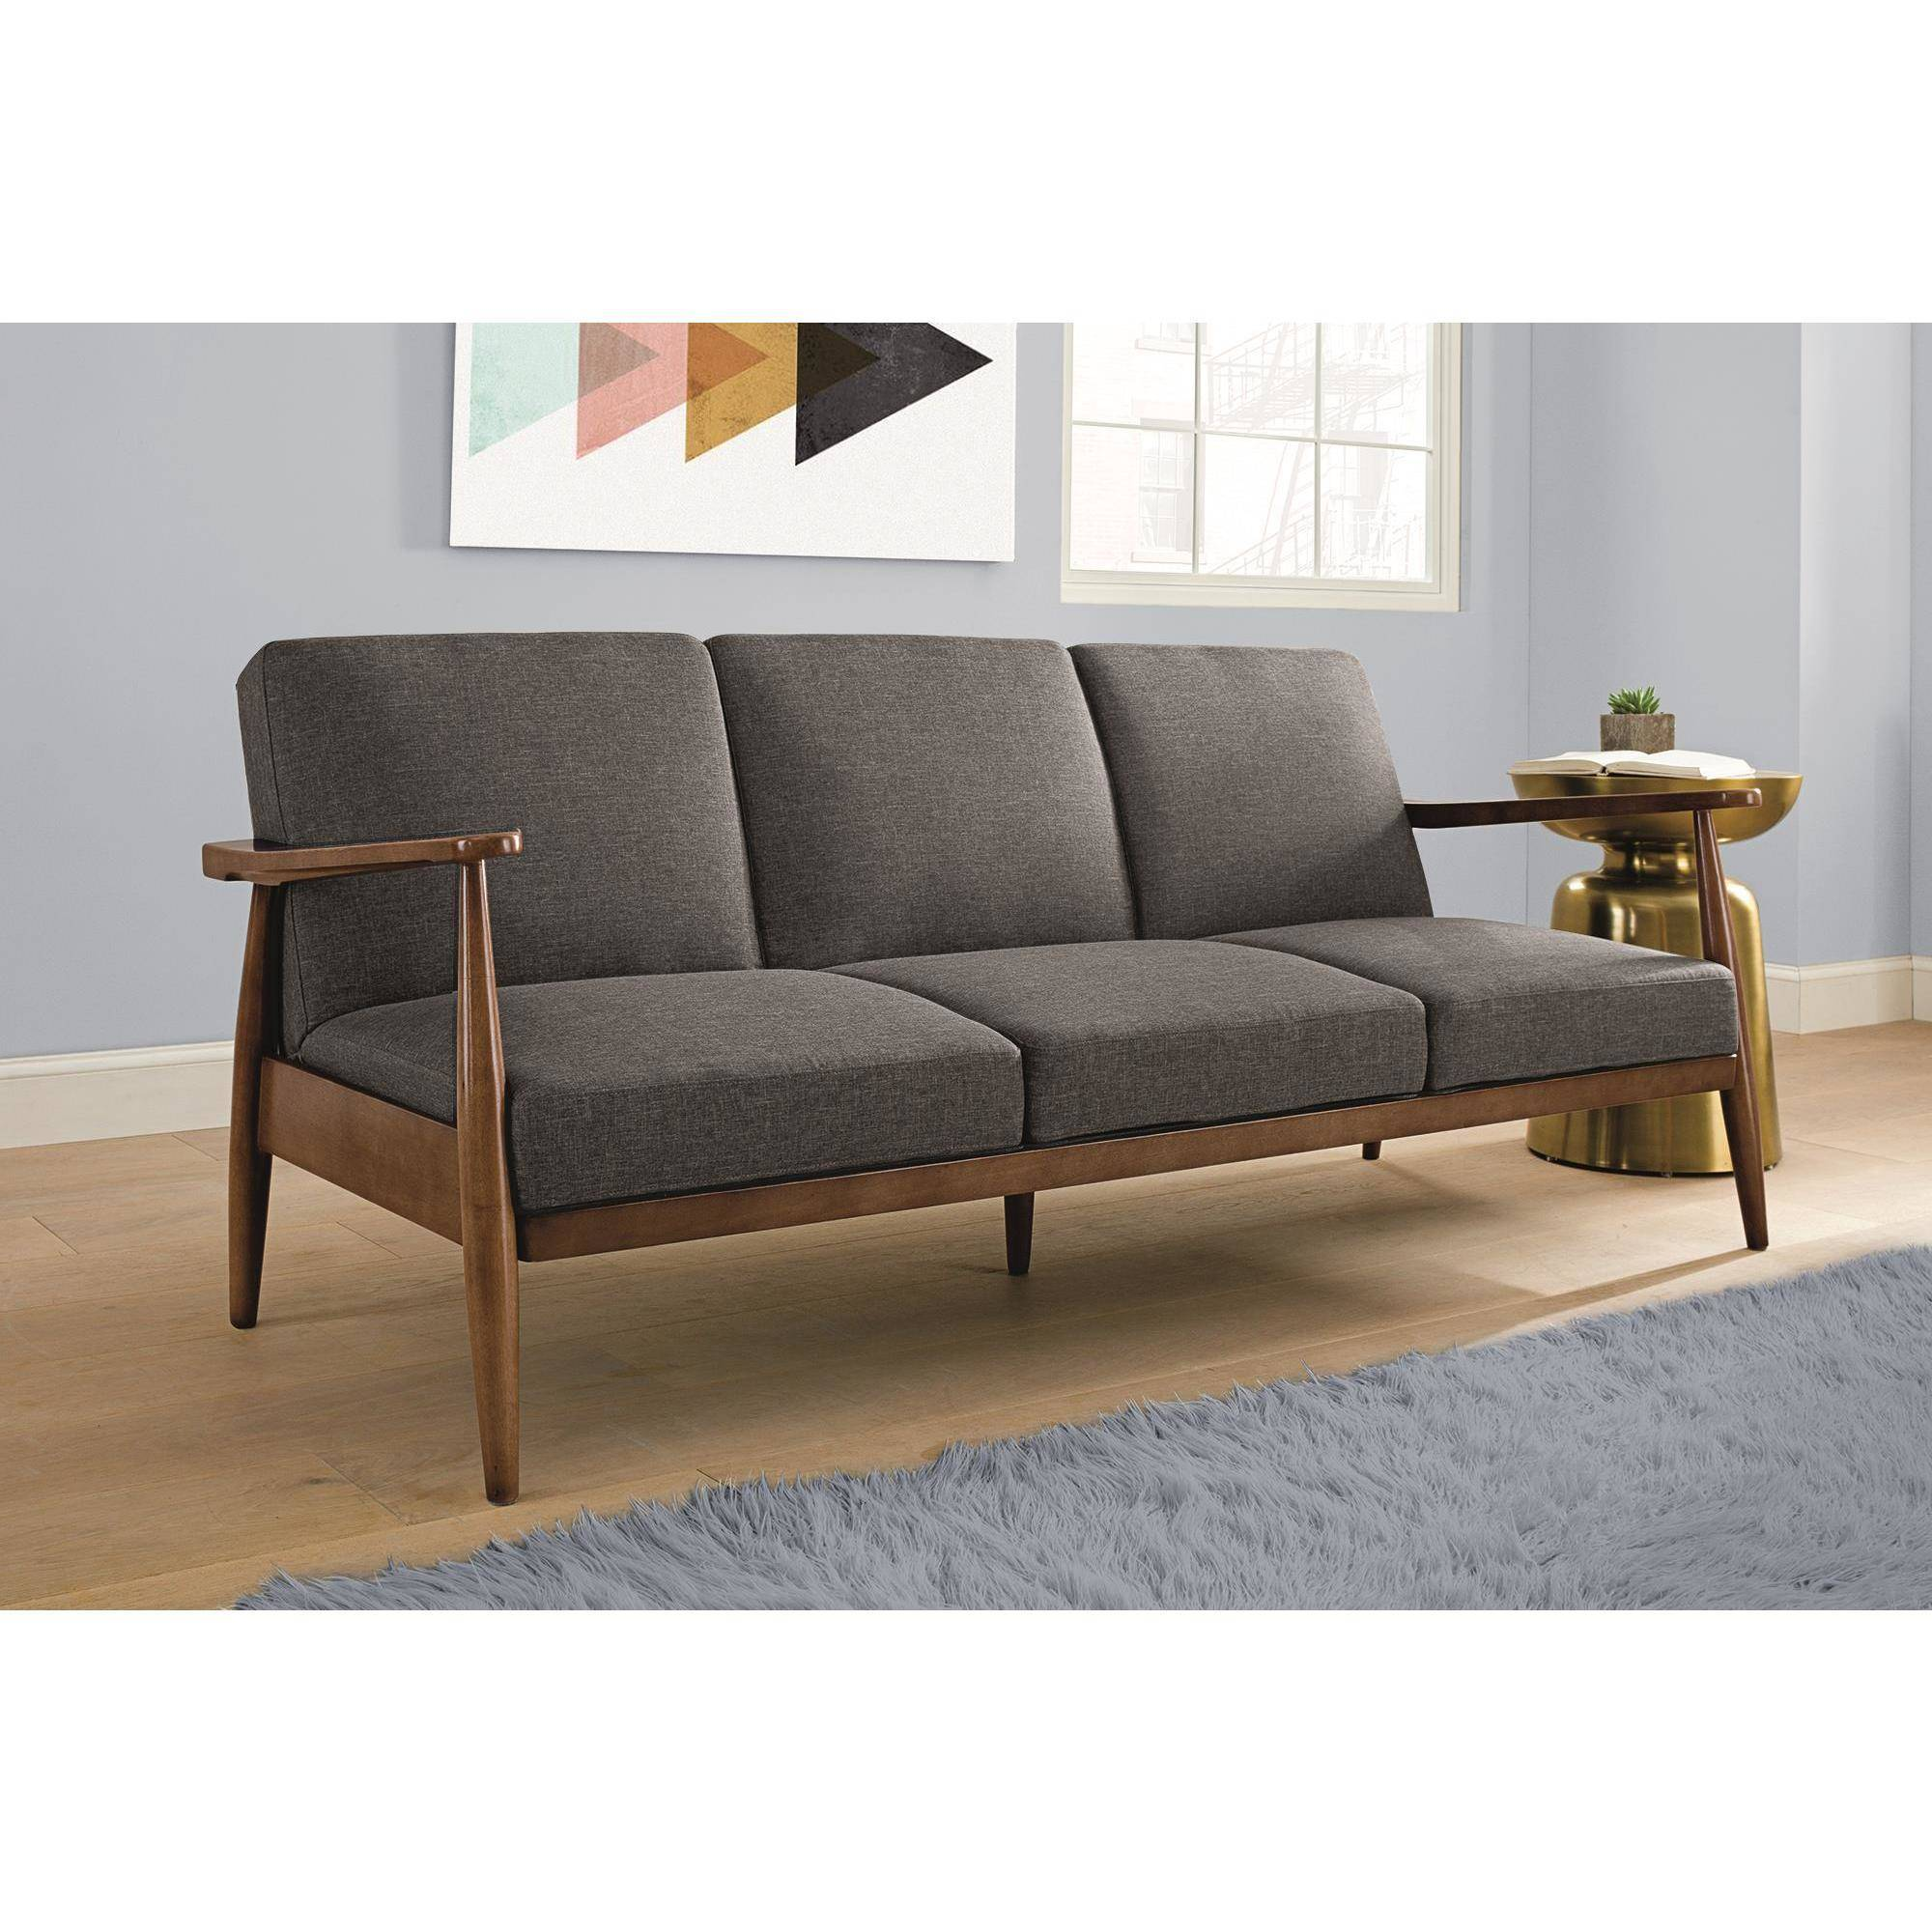 black room couch futon futons coaster sofa living bonded furniture leather warehouse shop oc beds